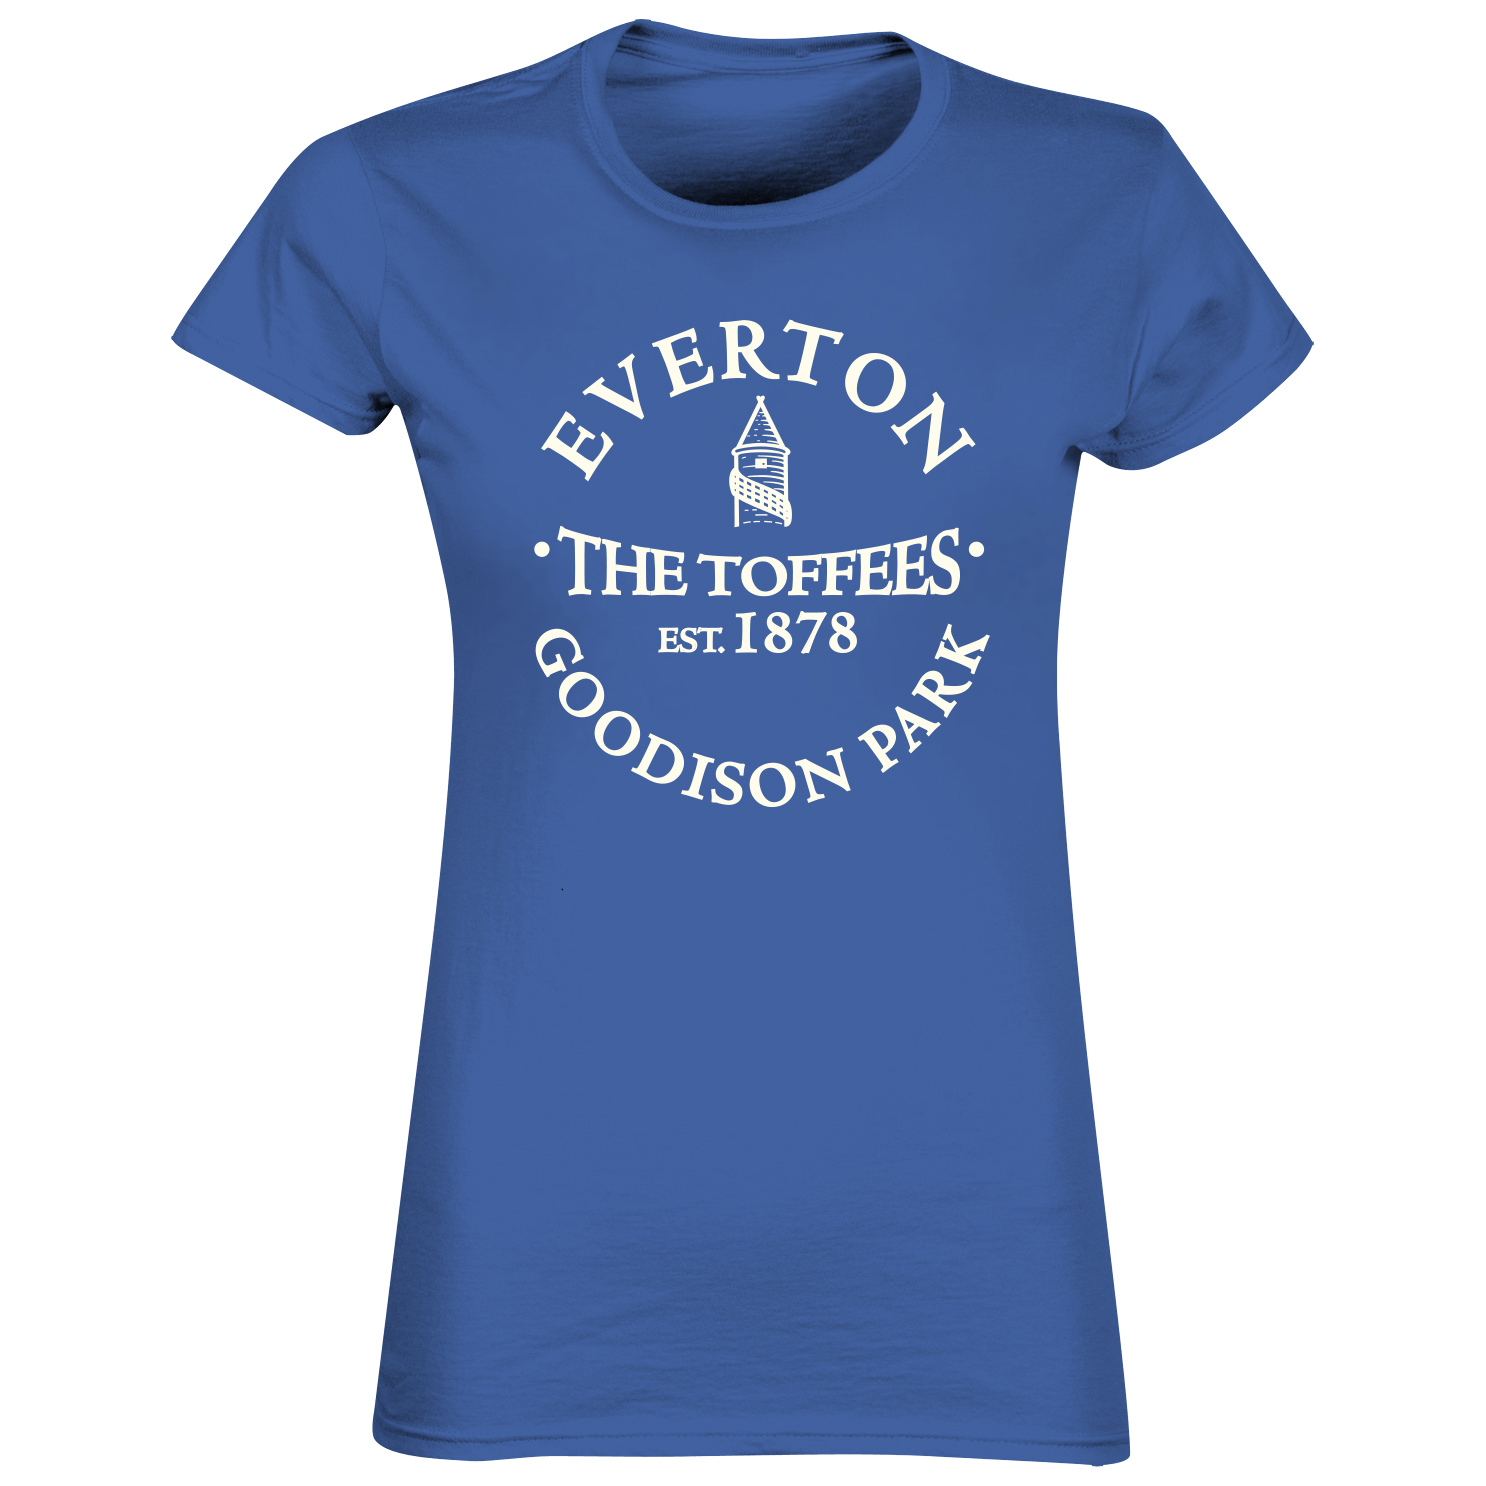 Everton 2for£20 Toffees T-Shirt - Royal - Womens